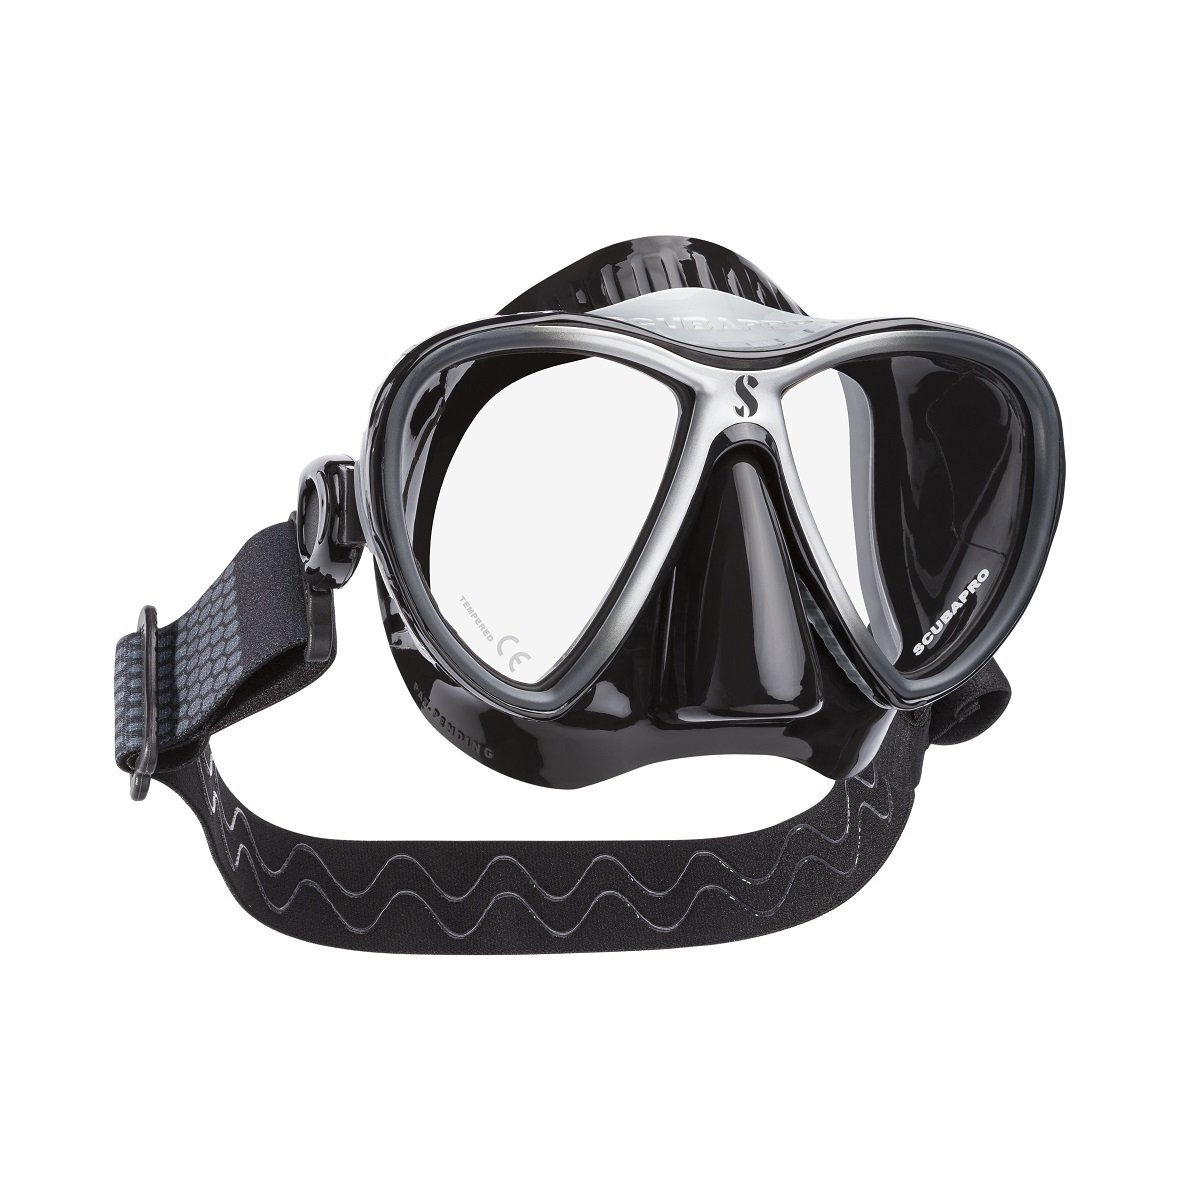 Synergy 2 Twin Trufit Dive Mask, w/Comfort Strap